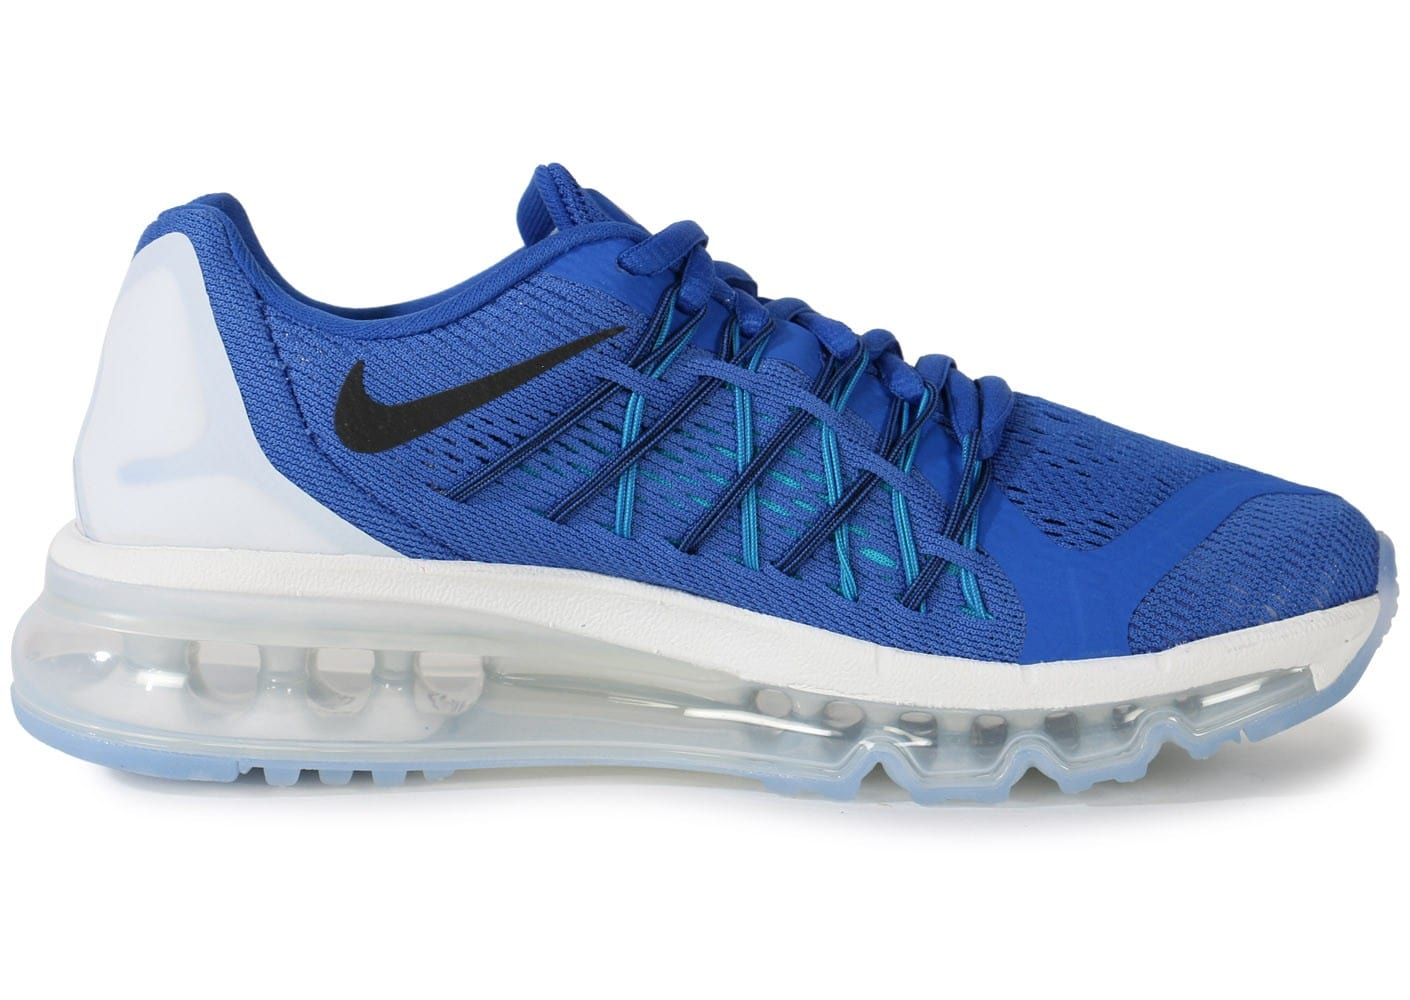 chaussure nike avec bulle,homme nike air max 2016 baskets